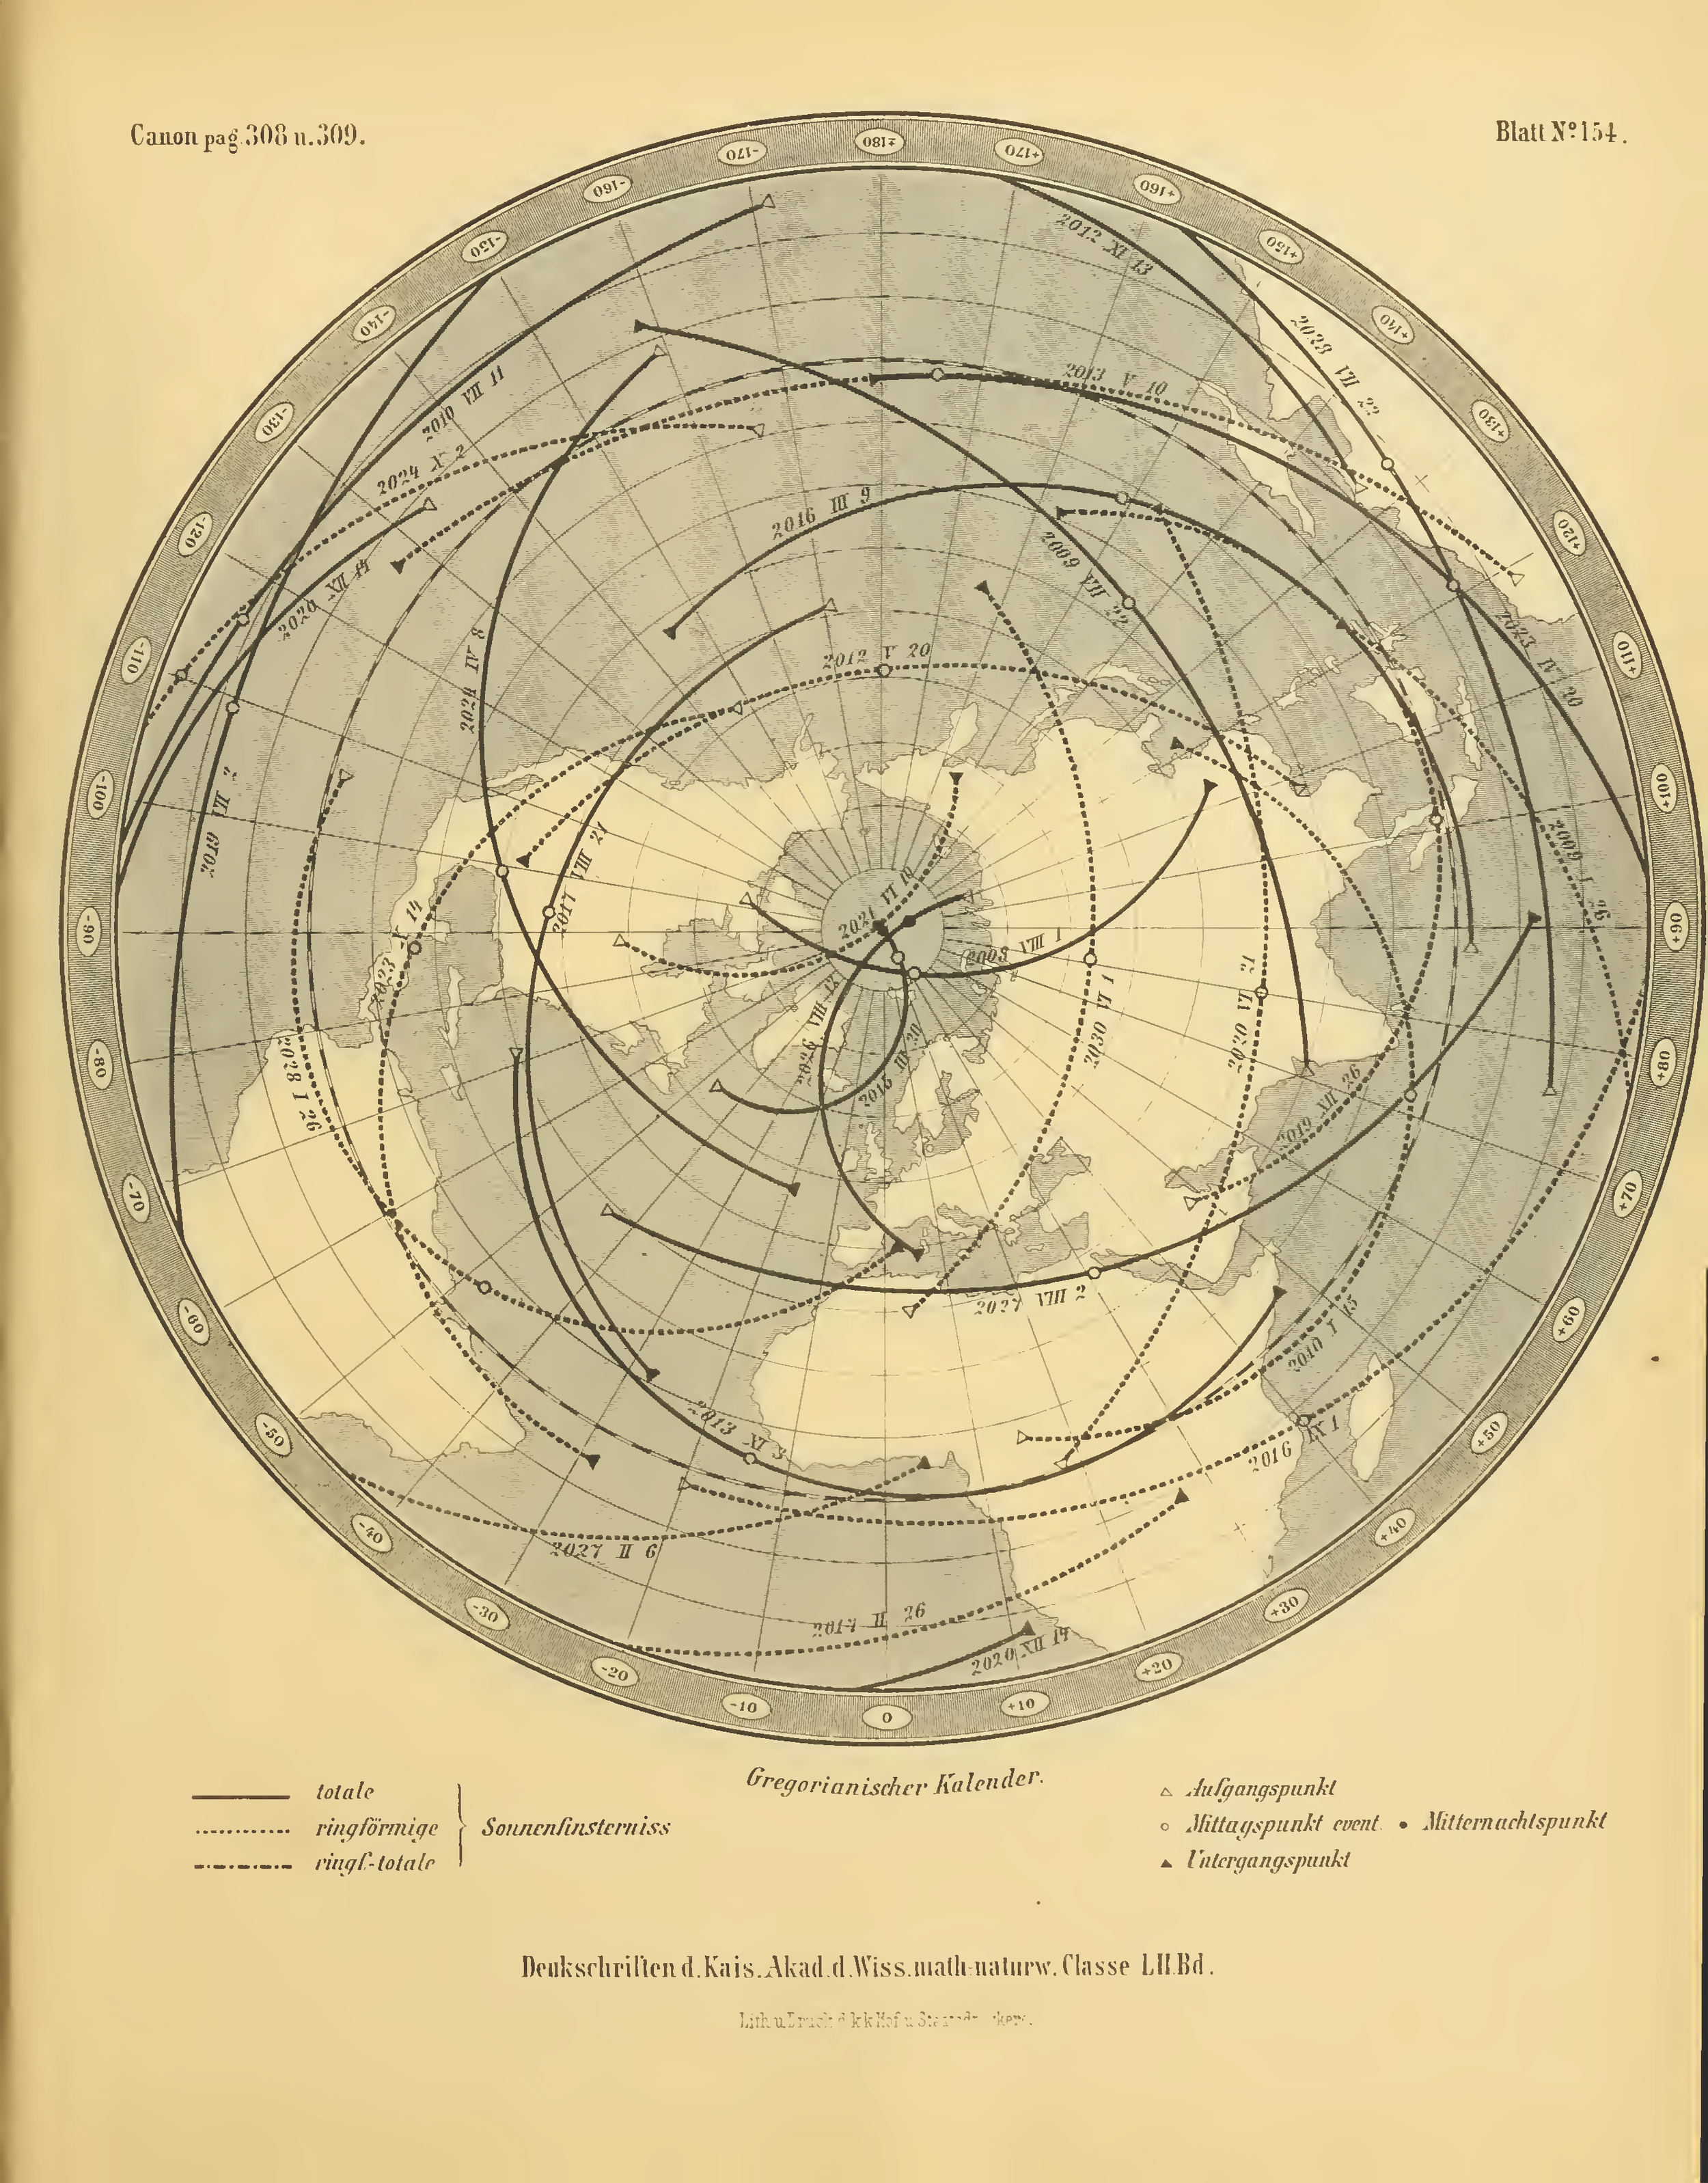 One of the 160 maps in the Canon der Finsternisse showing eclipses from 2008 to 2030